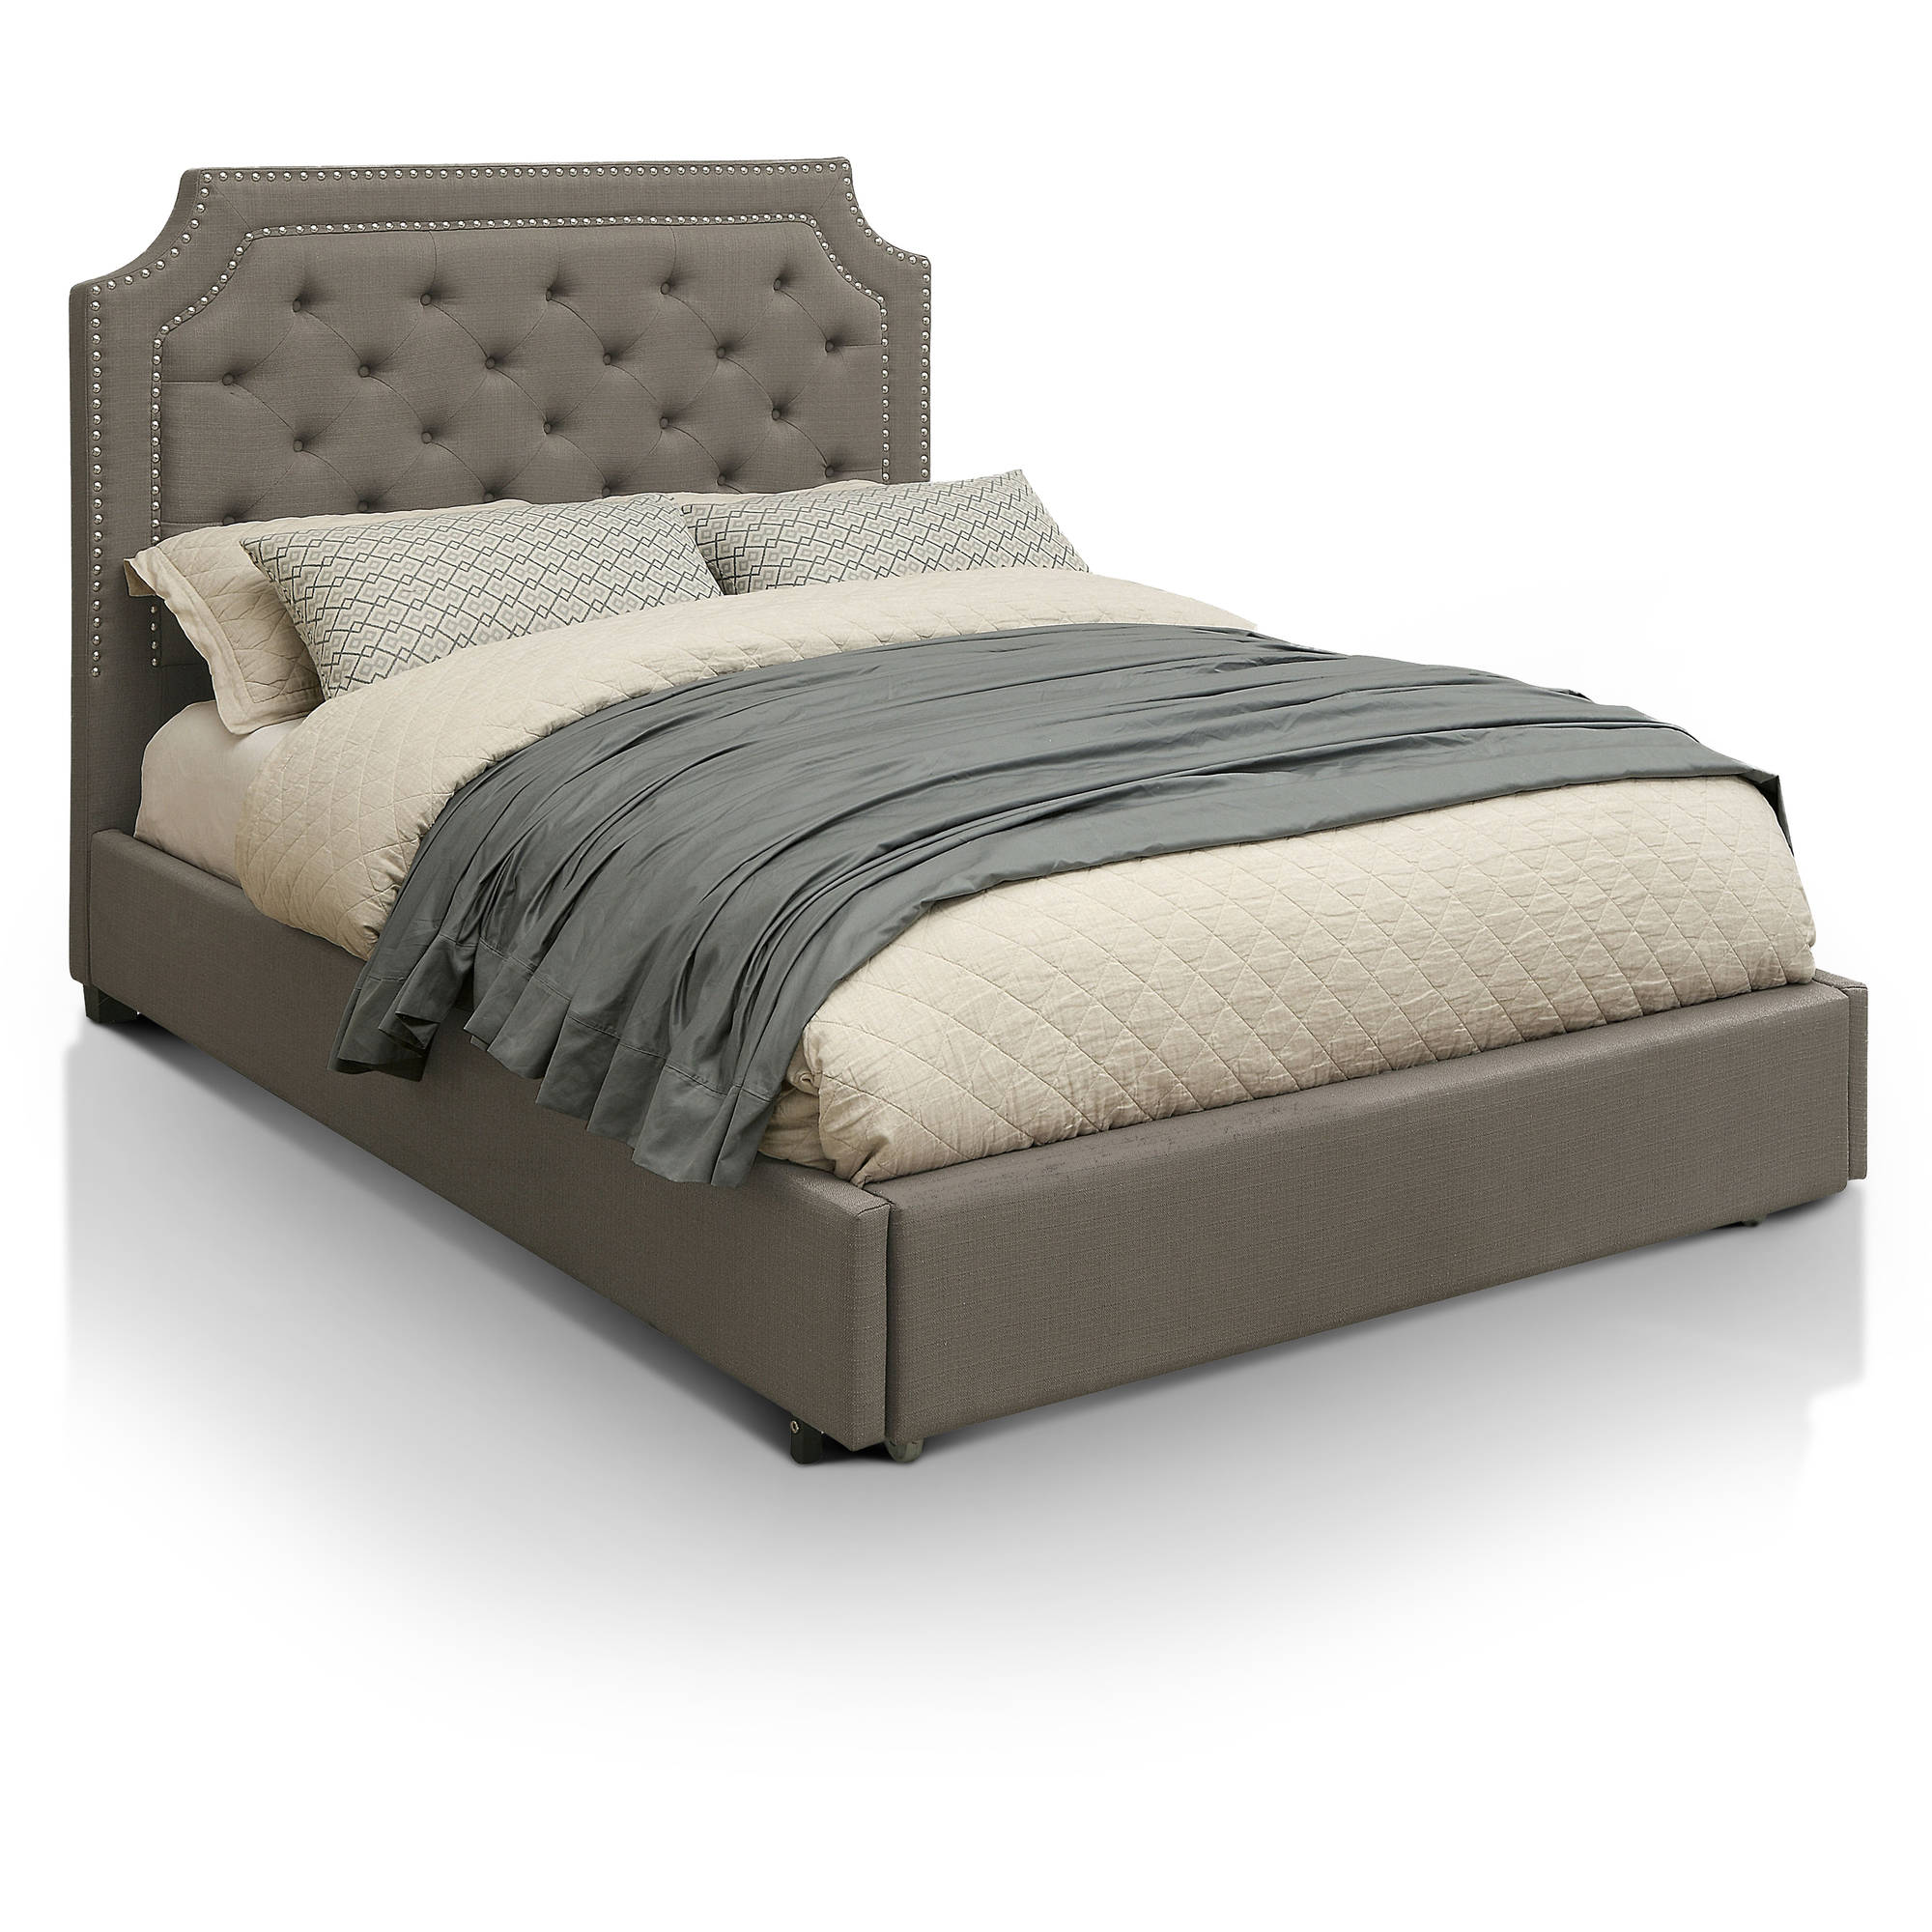 Furniture of America Verna Contemporary White Bed, King